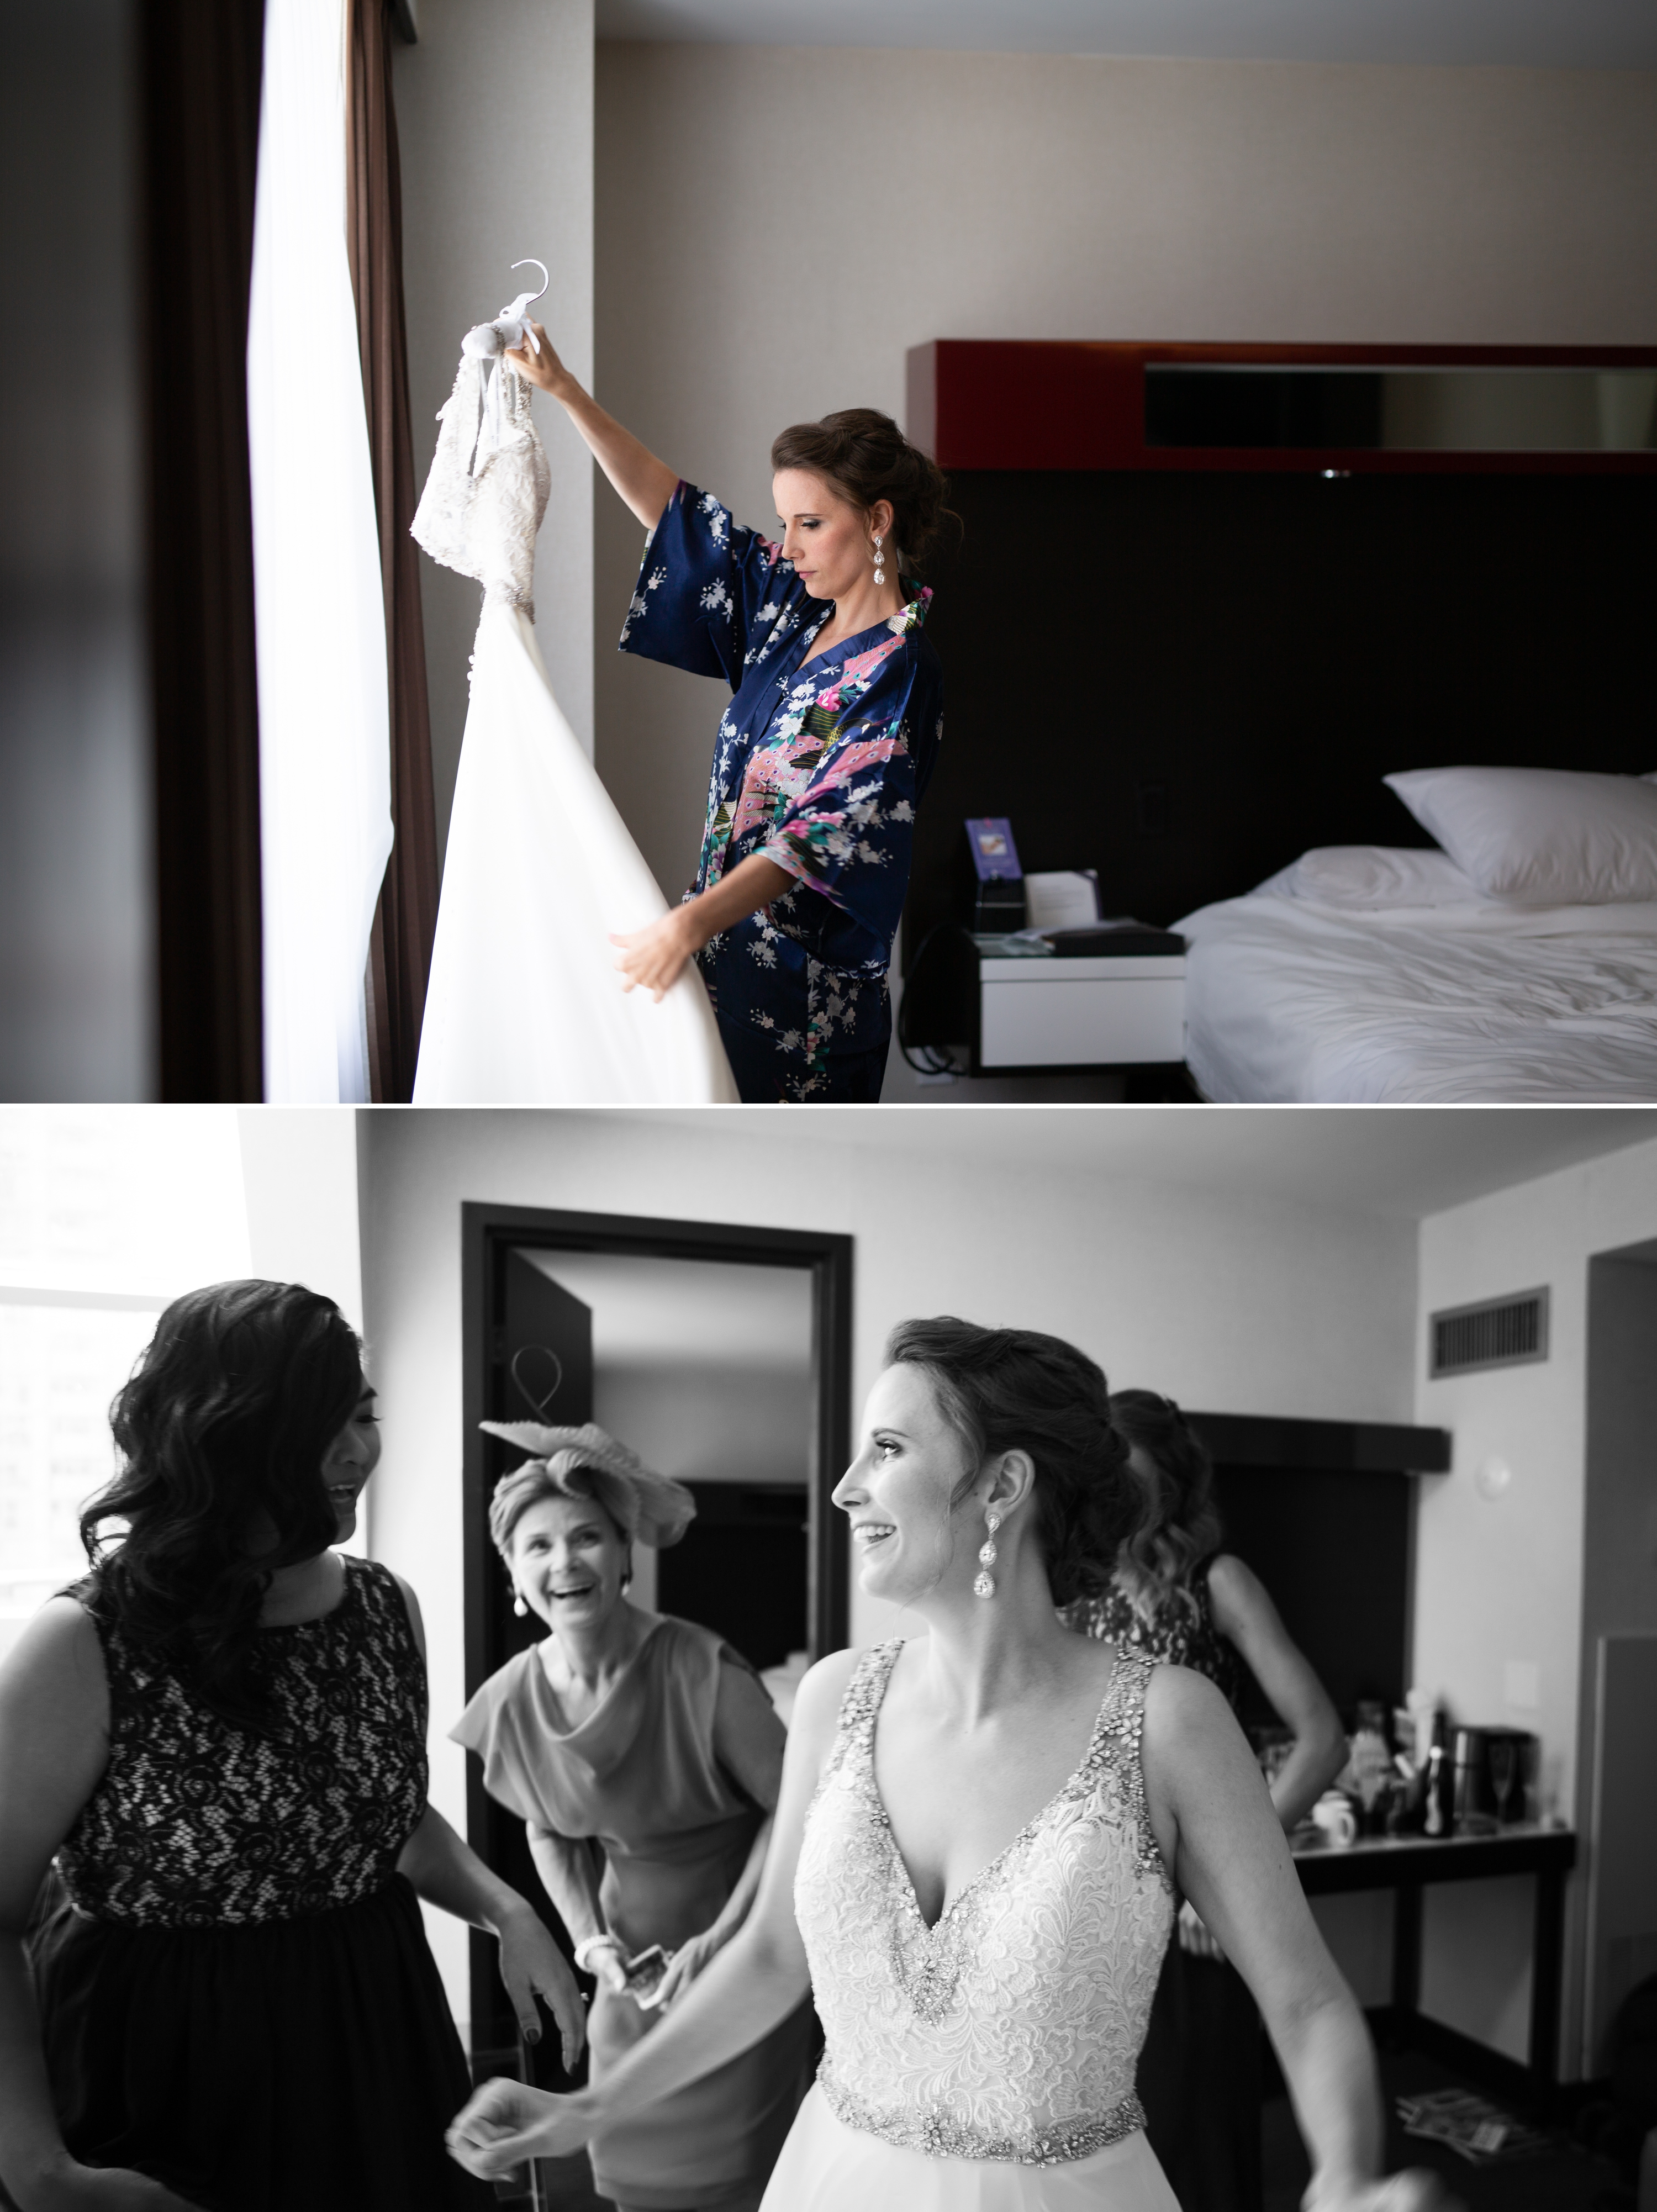 Bride Toronto Wedding 2nd Floor Events Zsuzsi Pal Photography